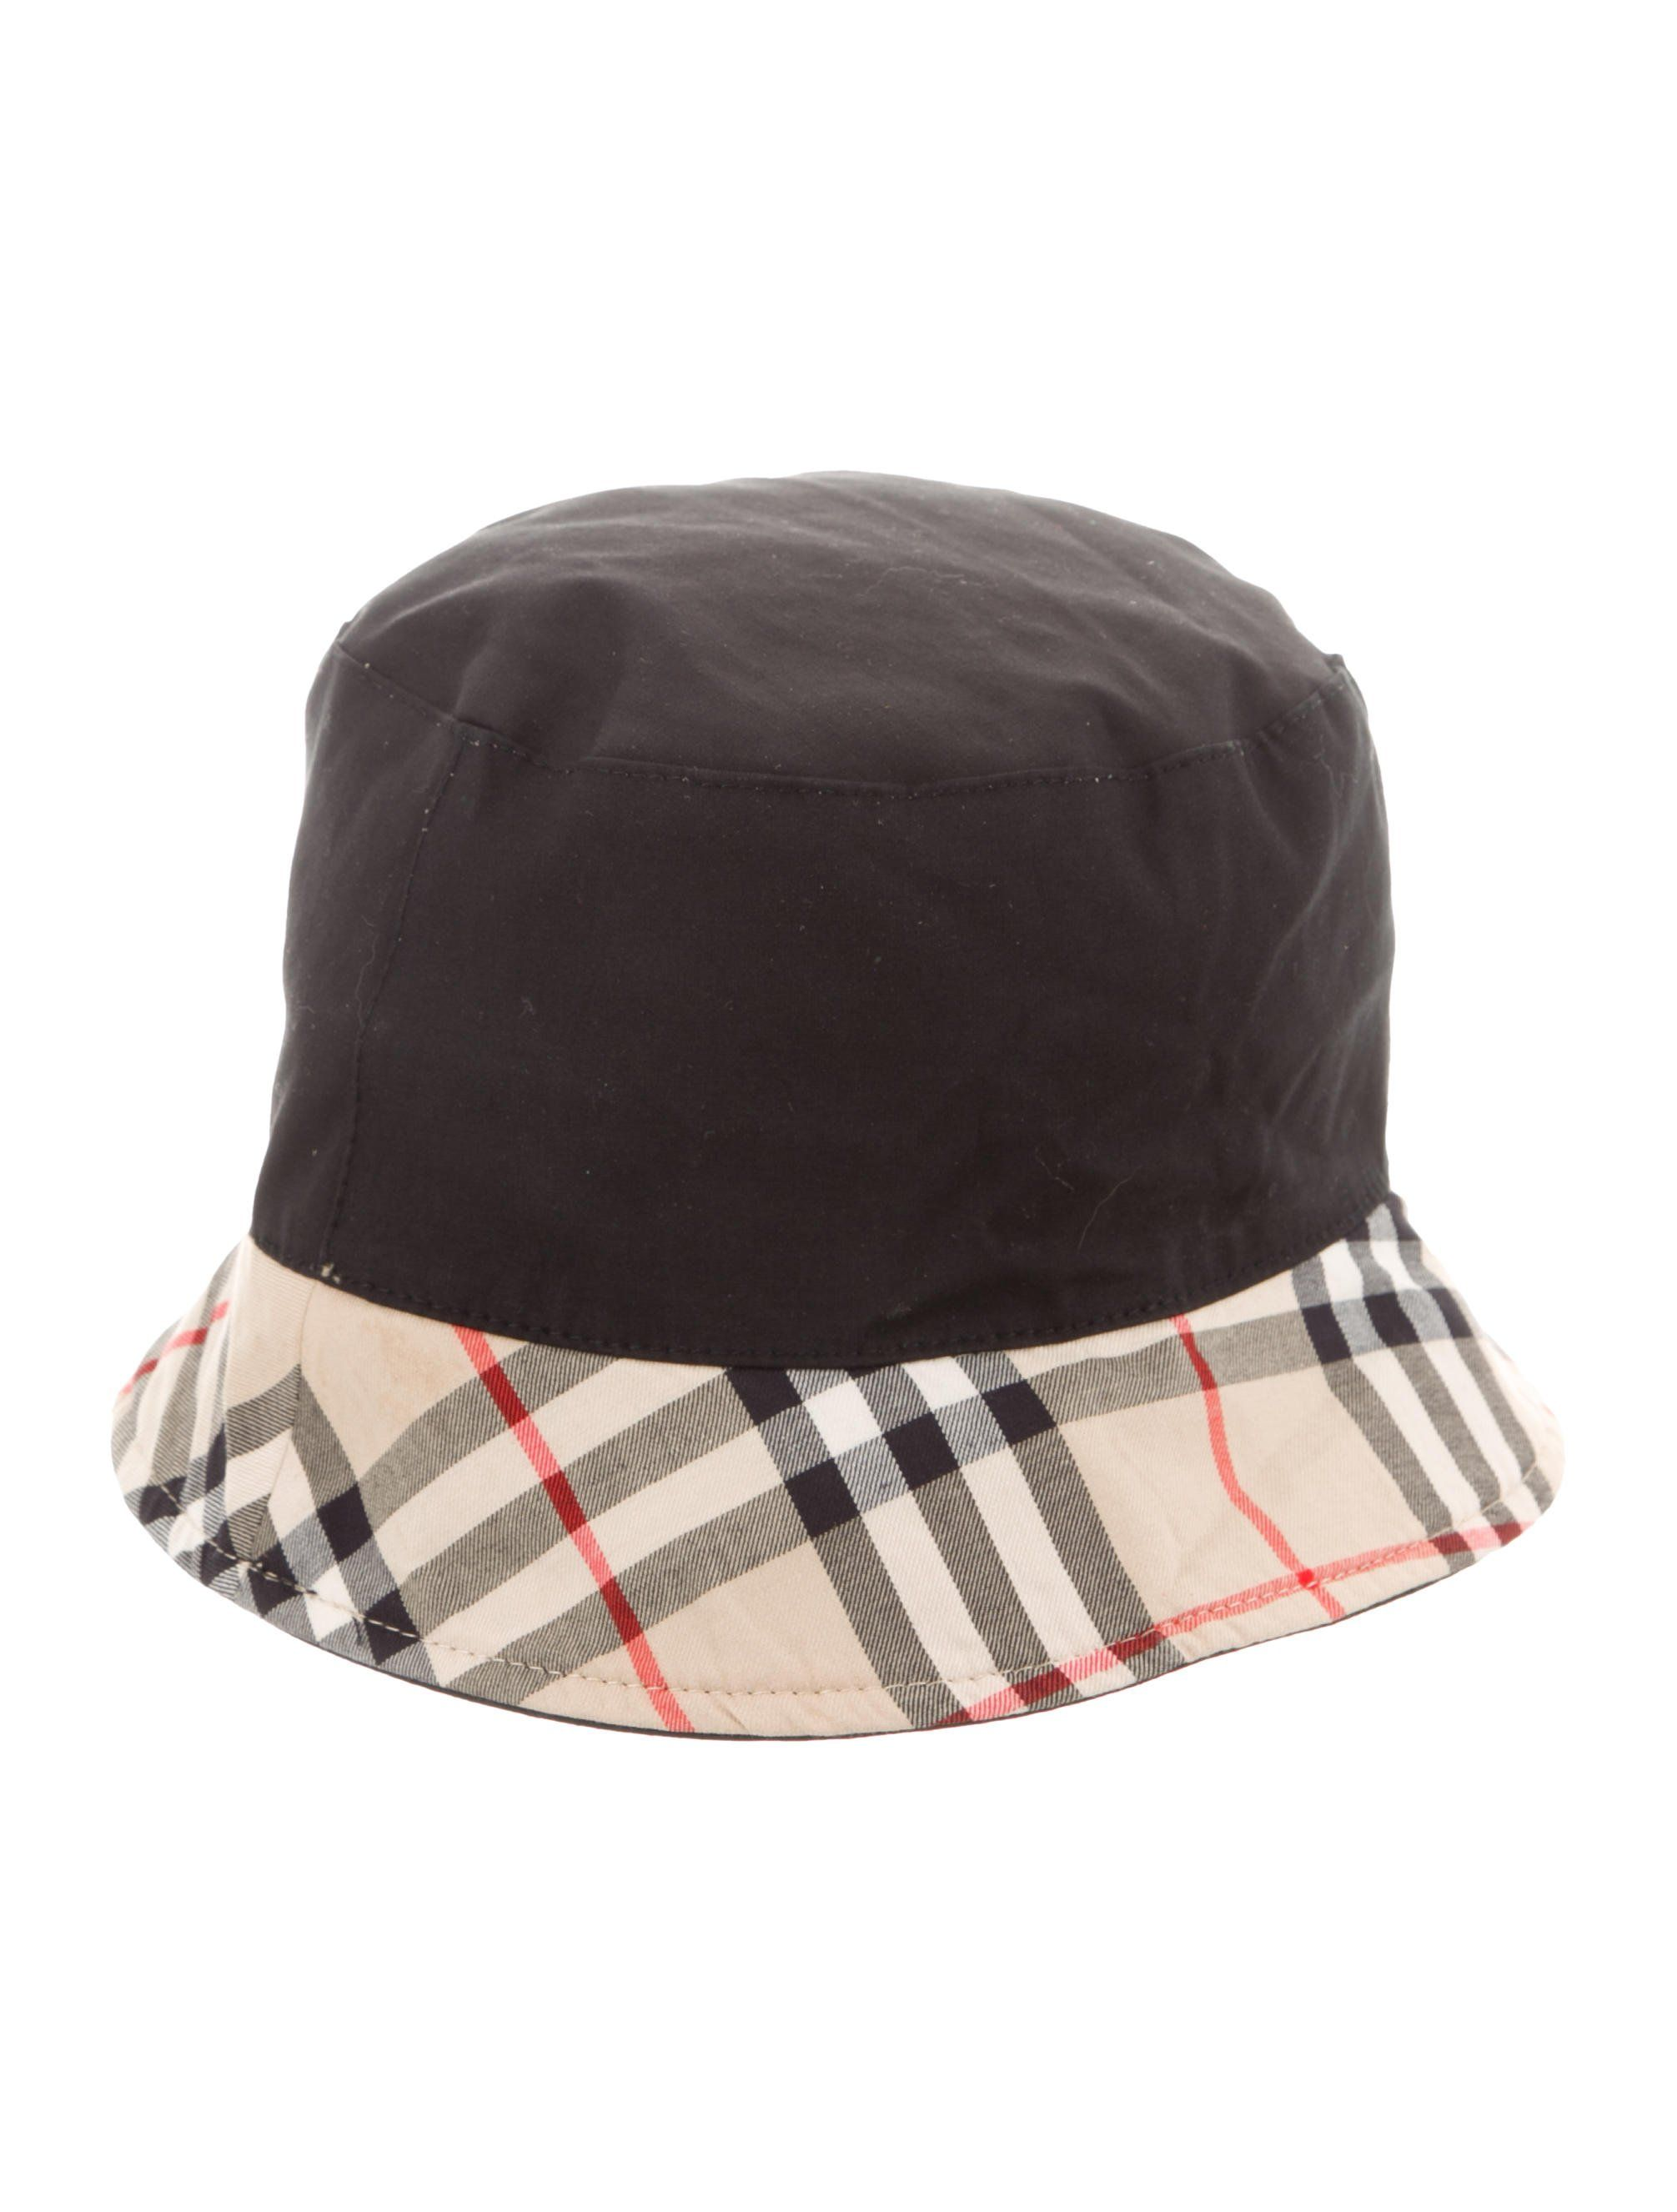 16a2d61637c Tan and multicolor Burberry reversible bucket hat featuring Nova check  print throughout. Designer size M.